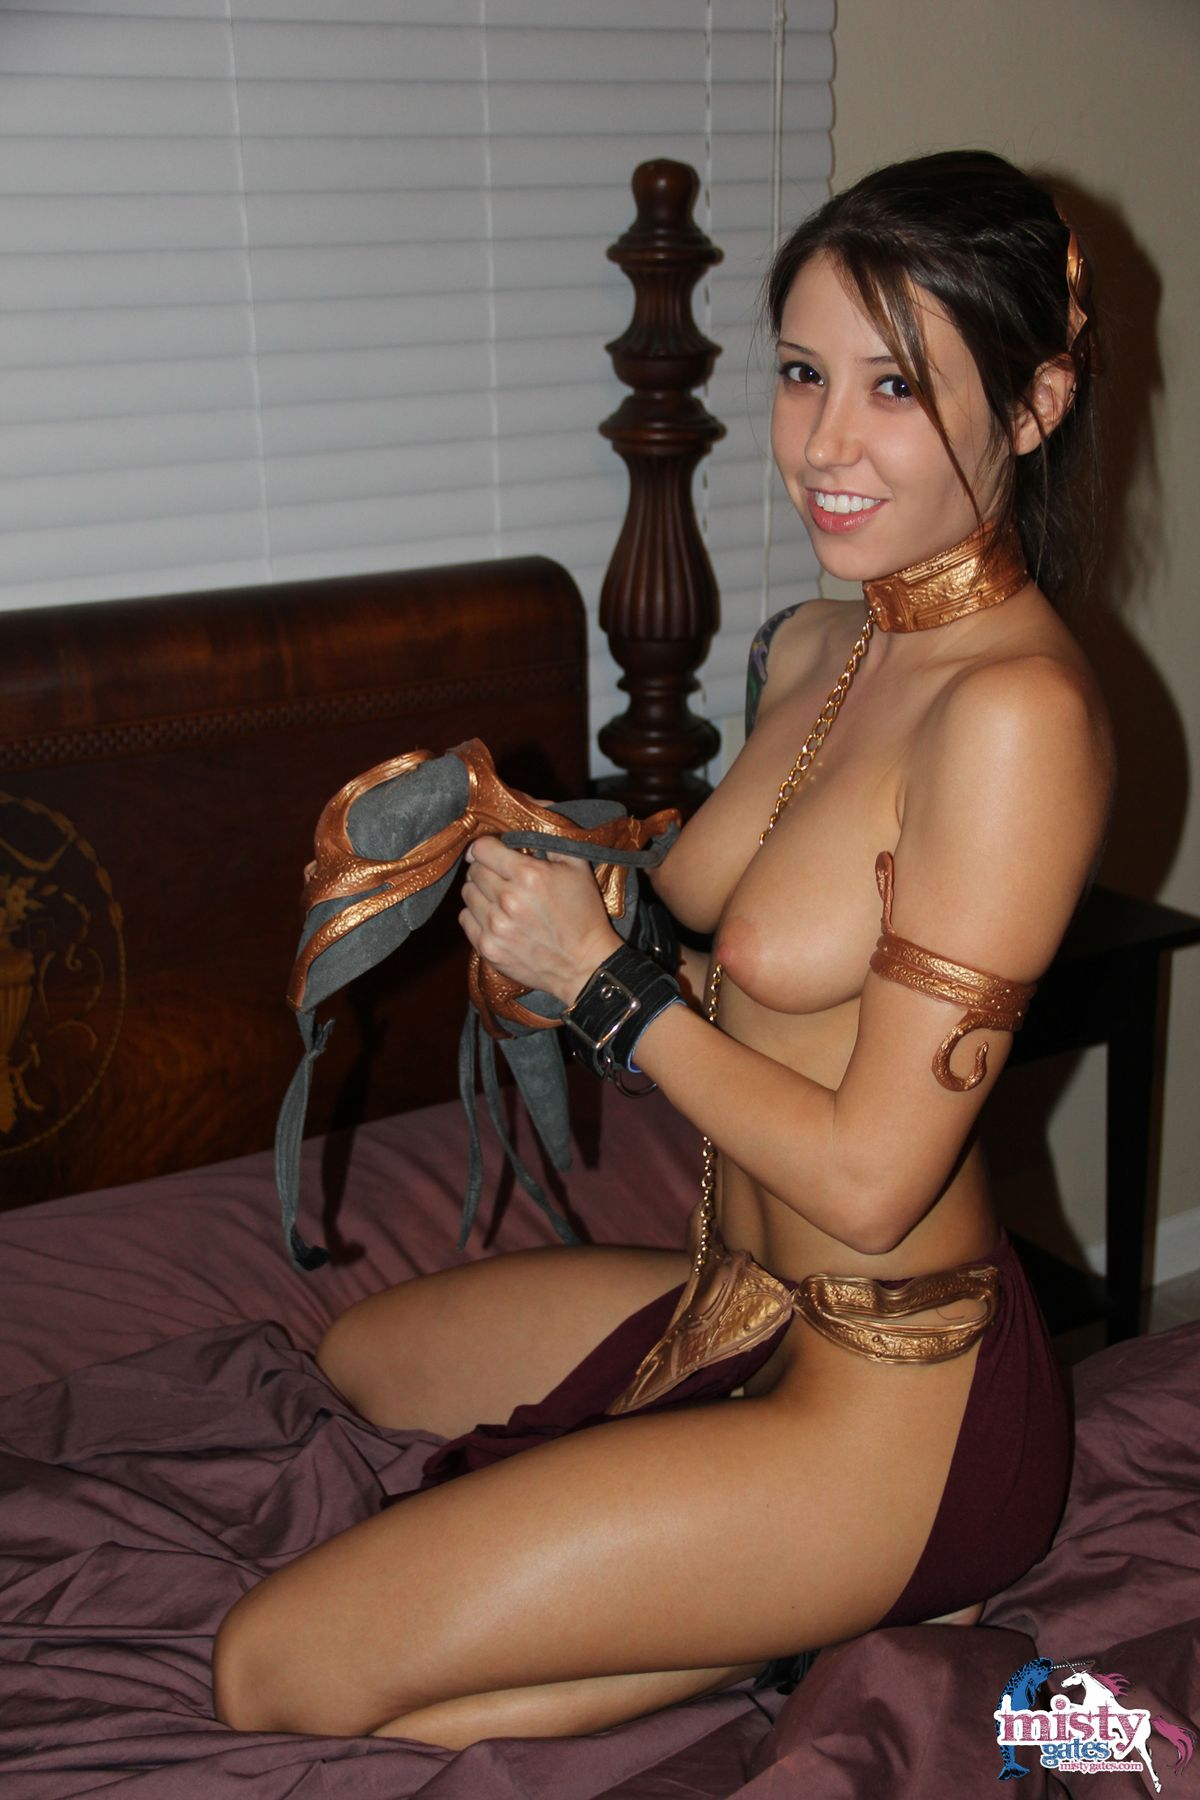 Hot girls in starwars costumes porn pics hentai videos